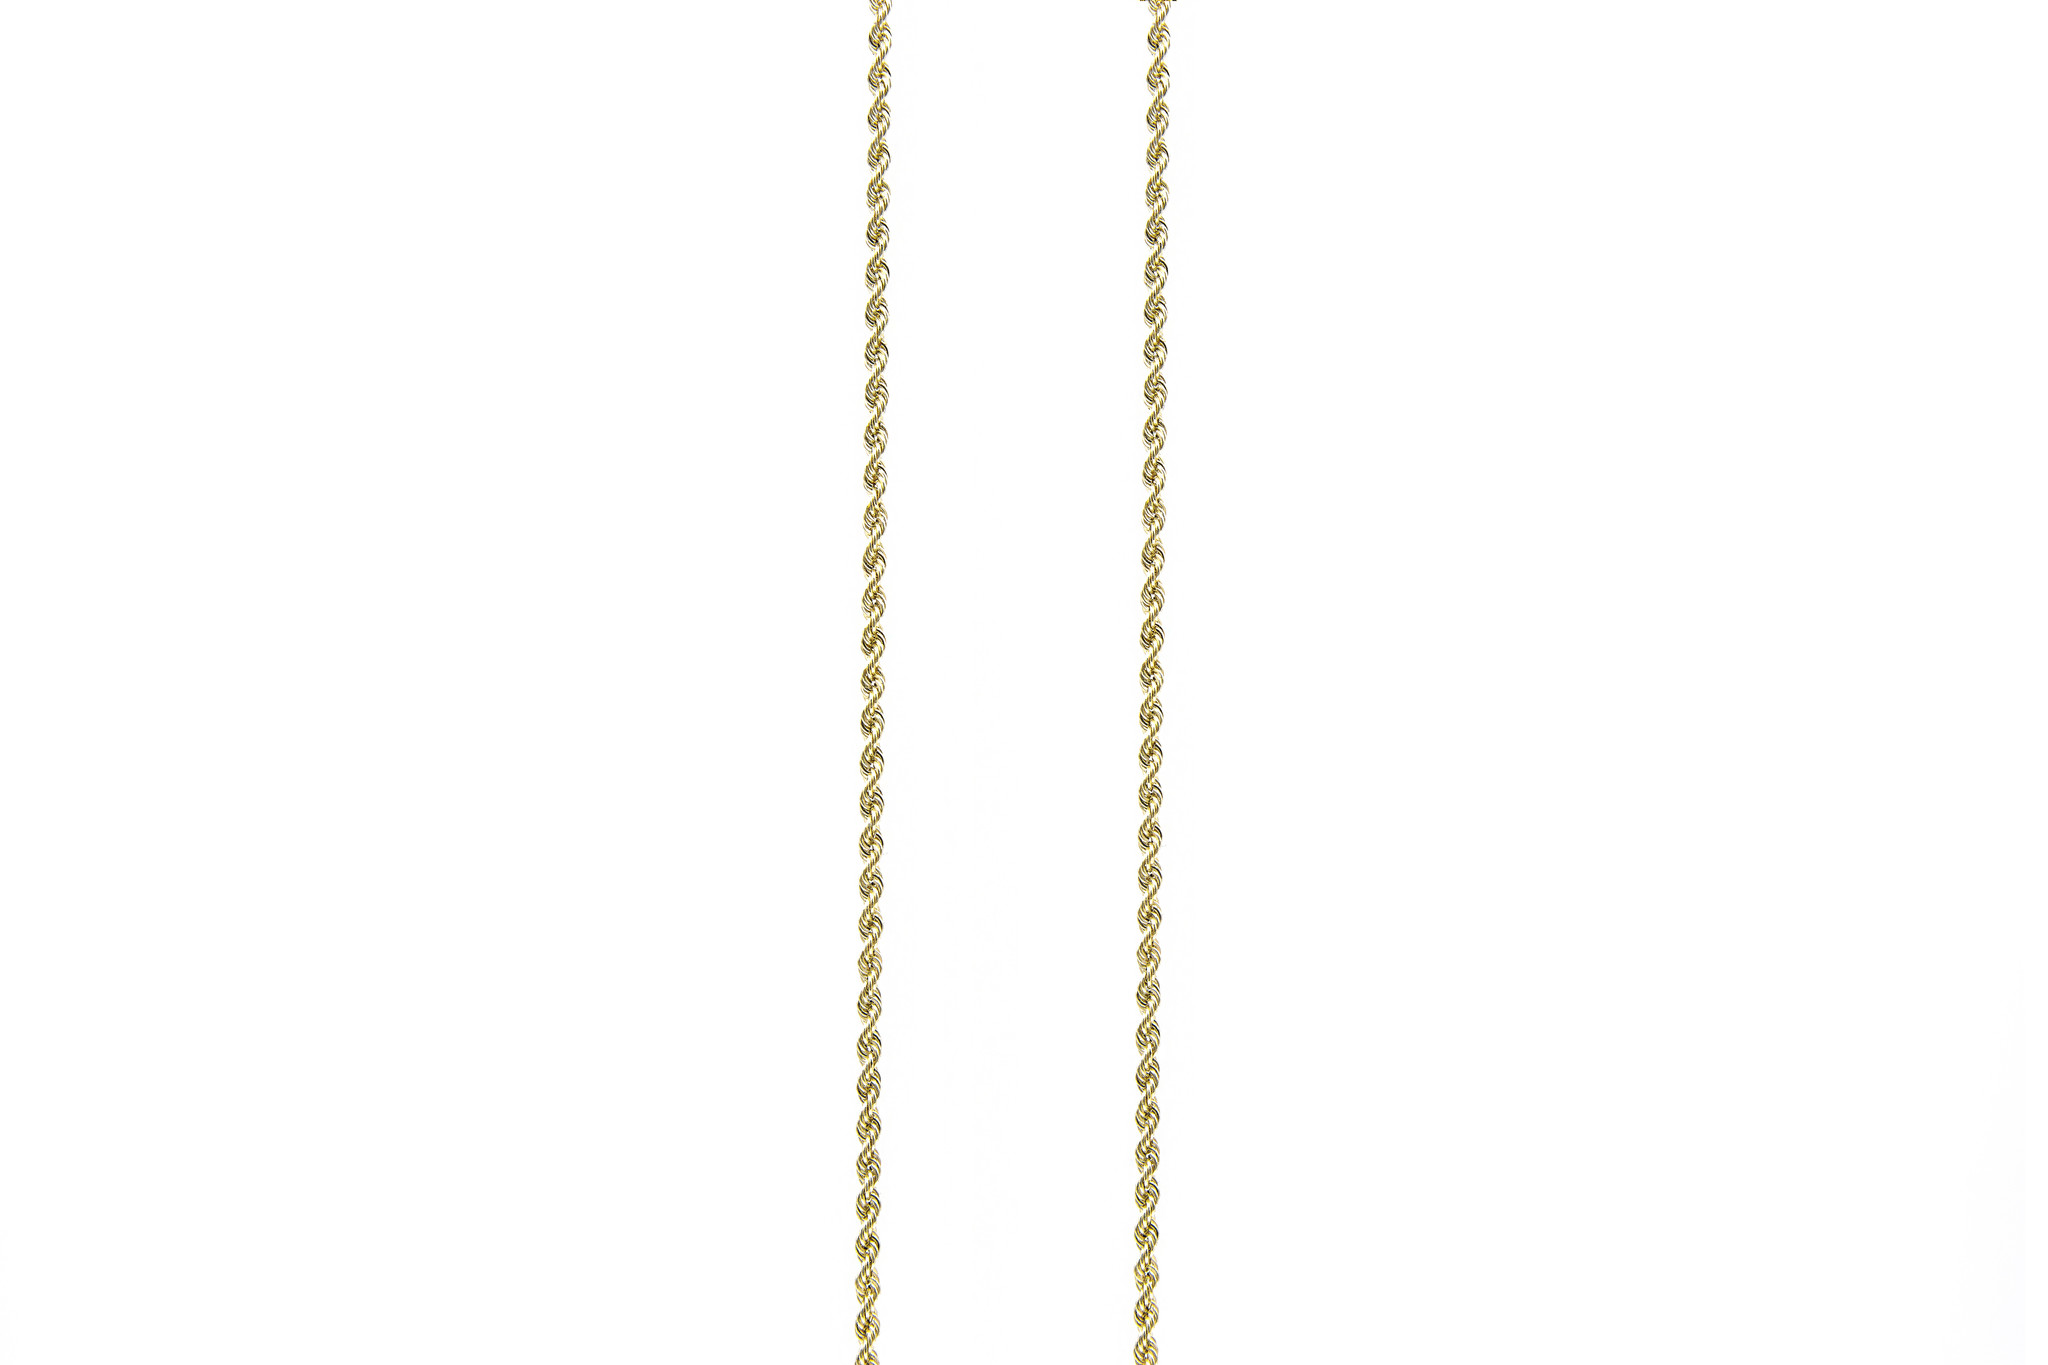 Rope Chain 14k-2 mm-1